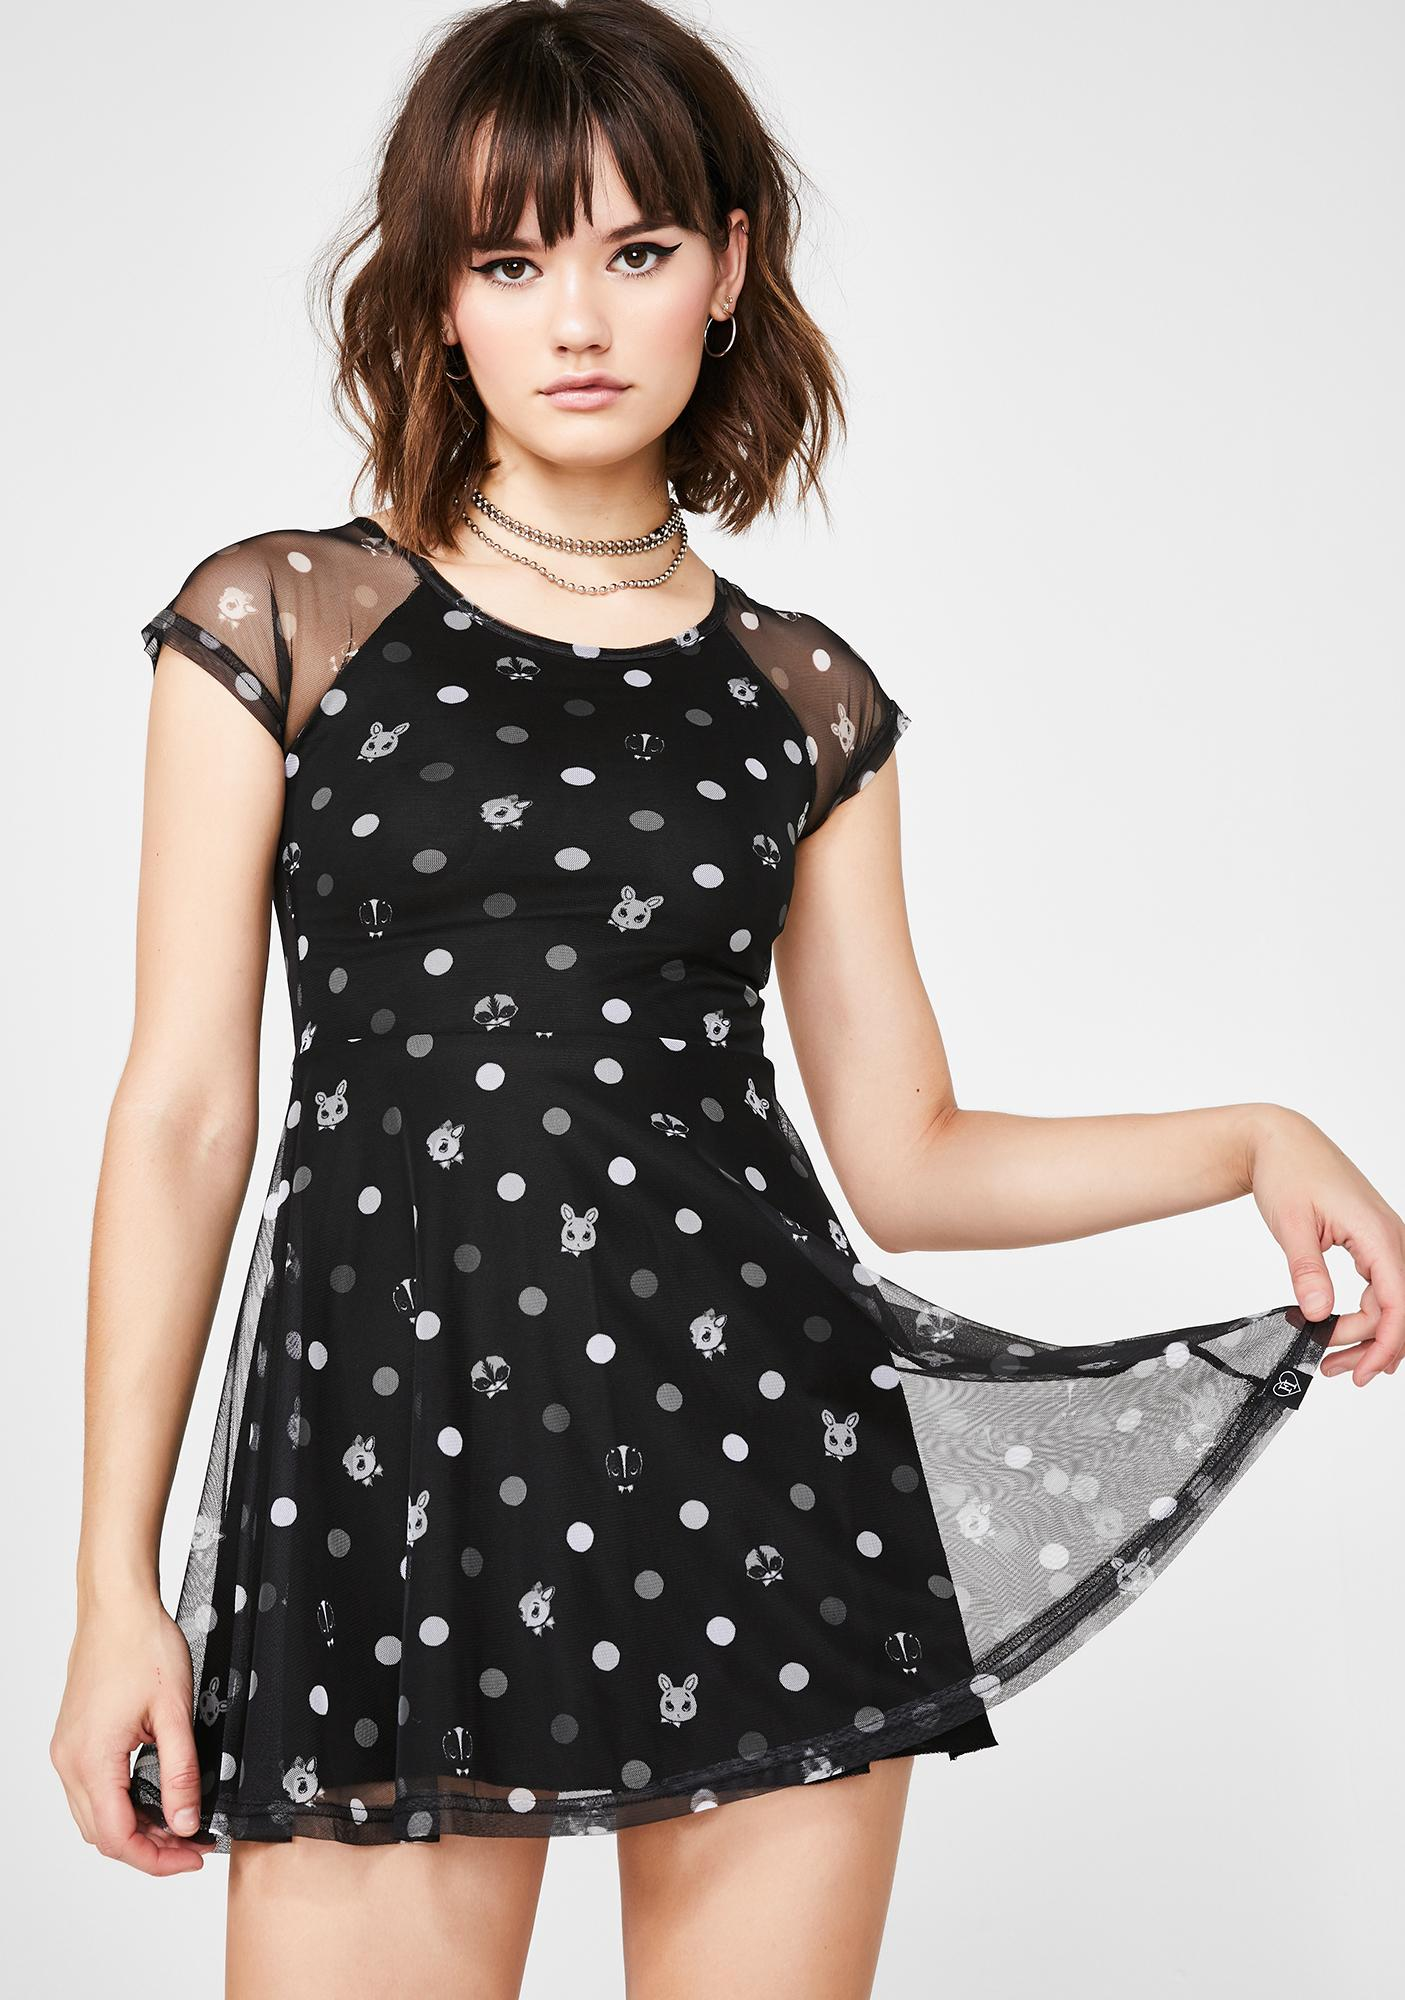 Fearless Illustration Odd One Out Skater Dress  97498dce9